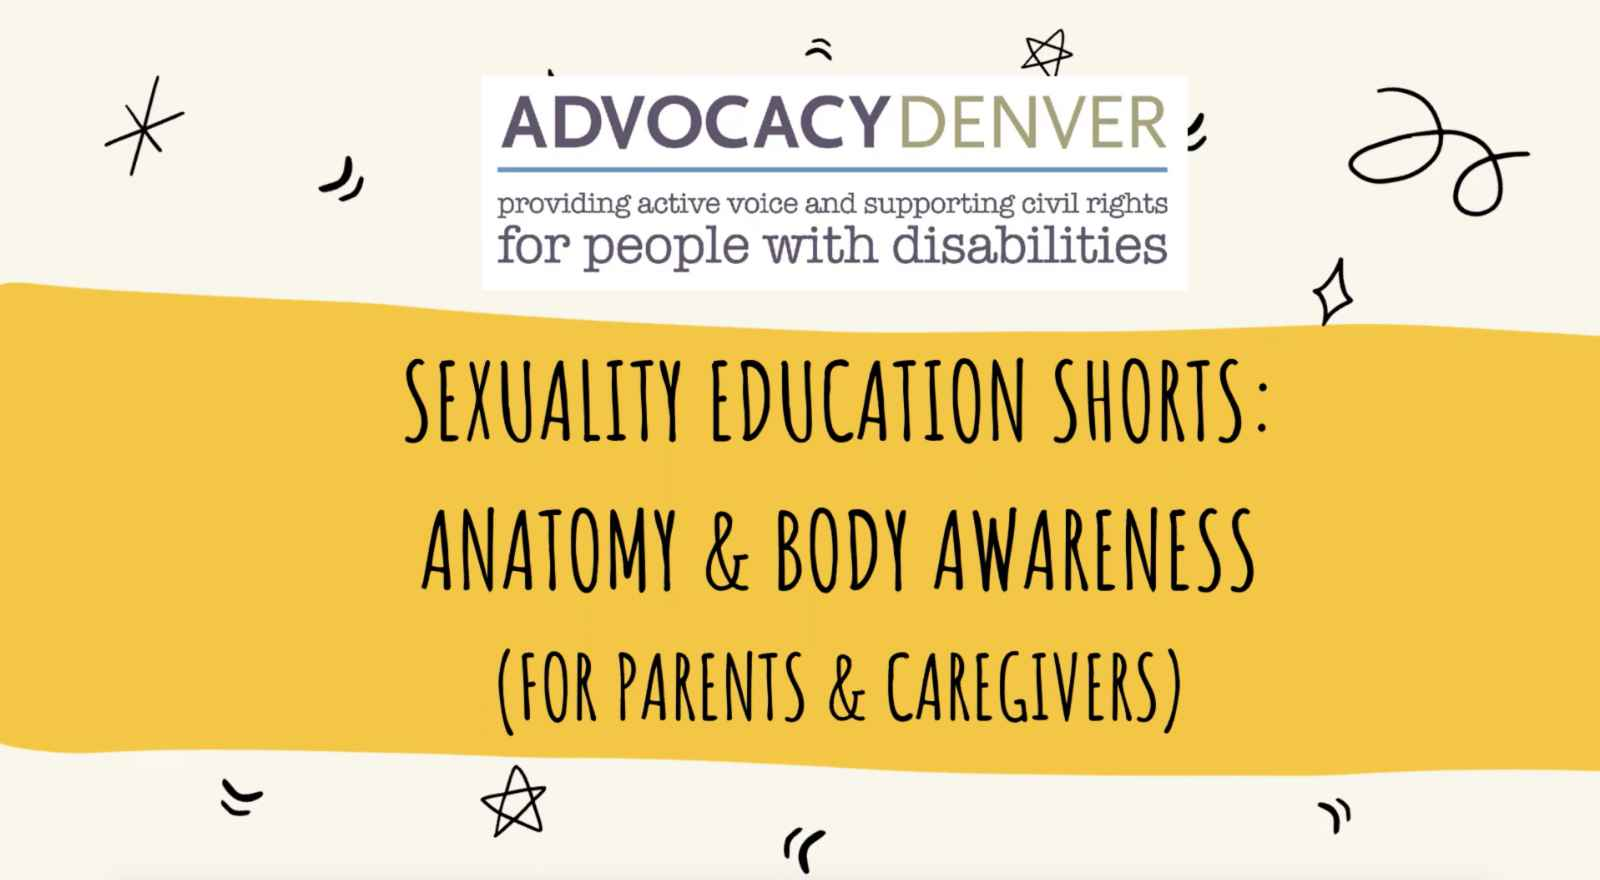 Sexuality Education Shorts: Anatomy and Body Awareness